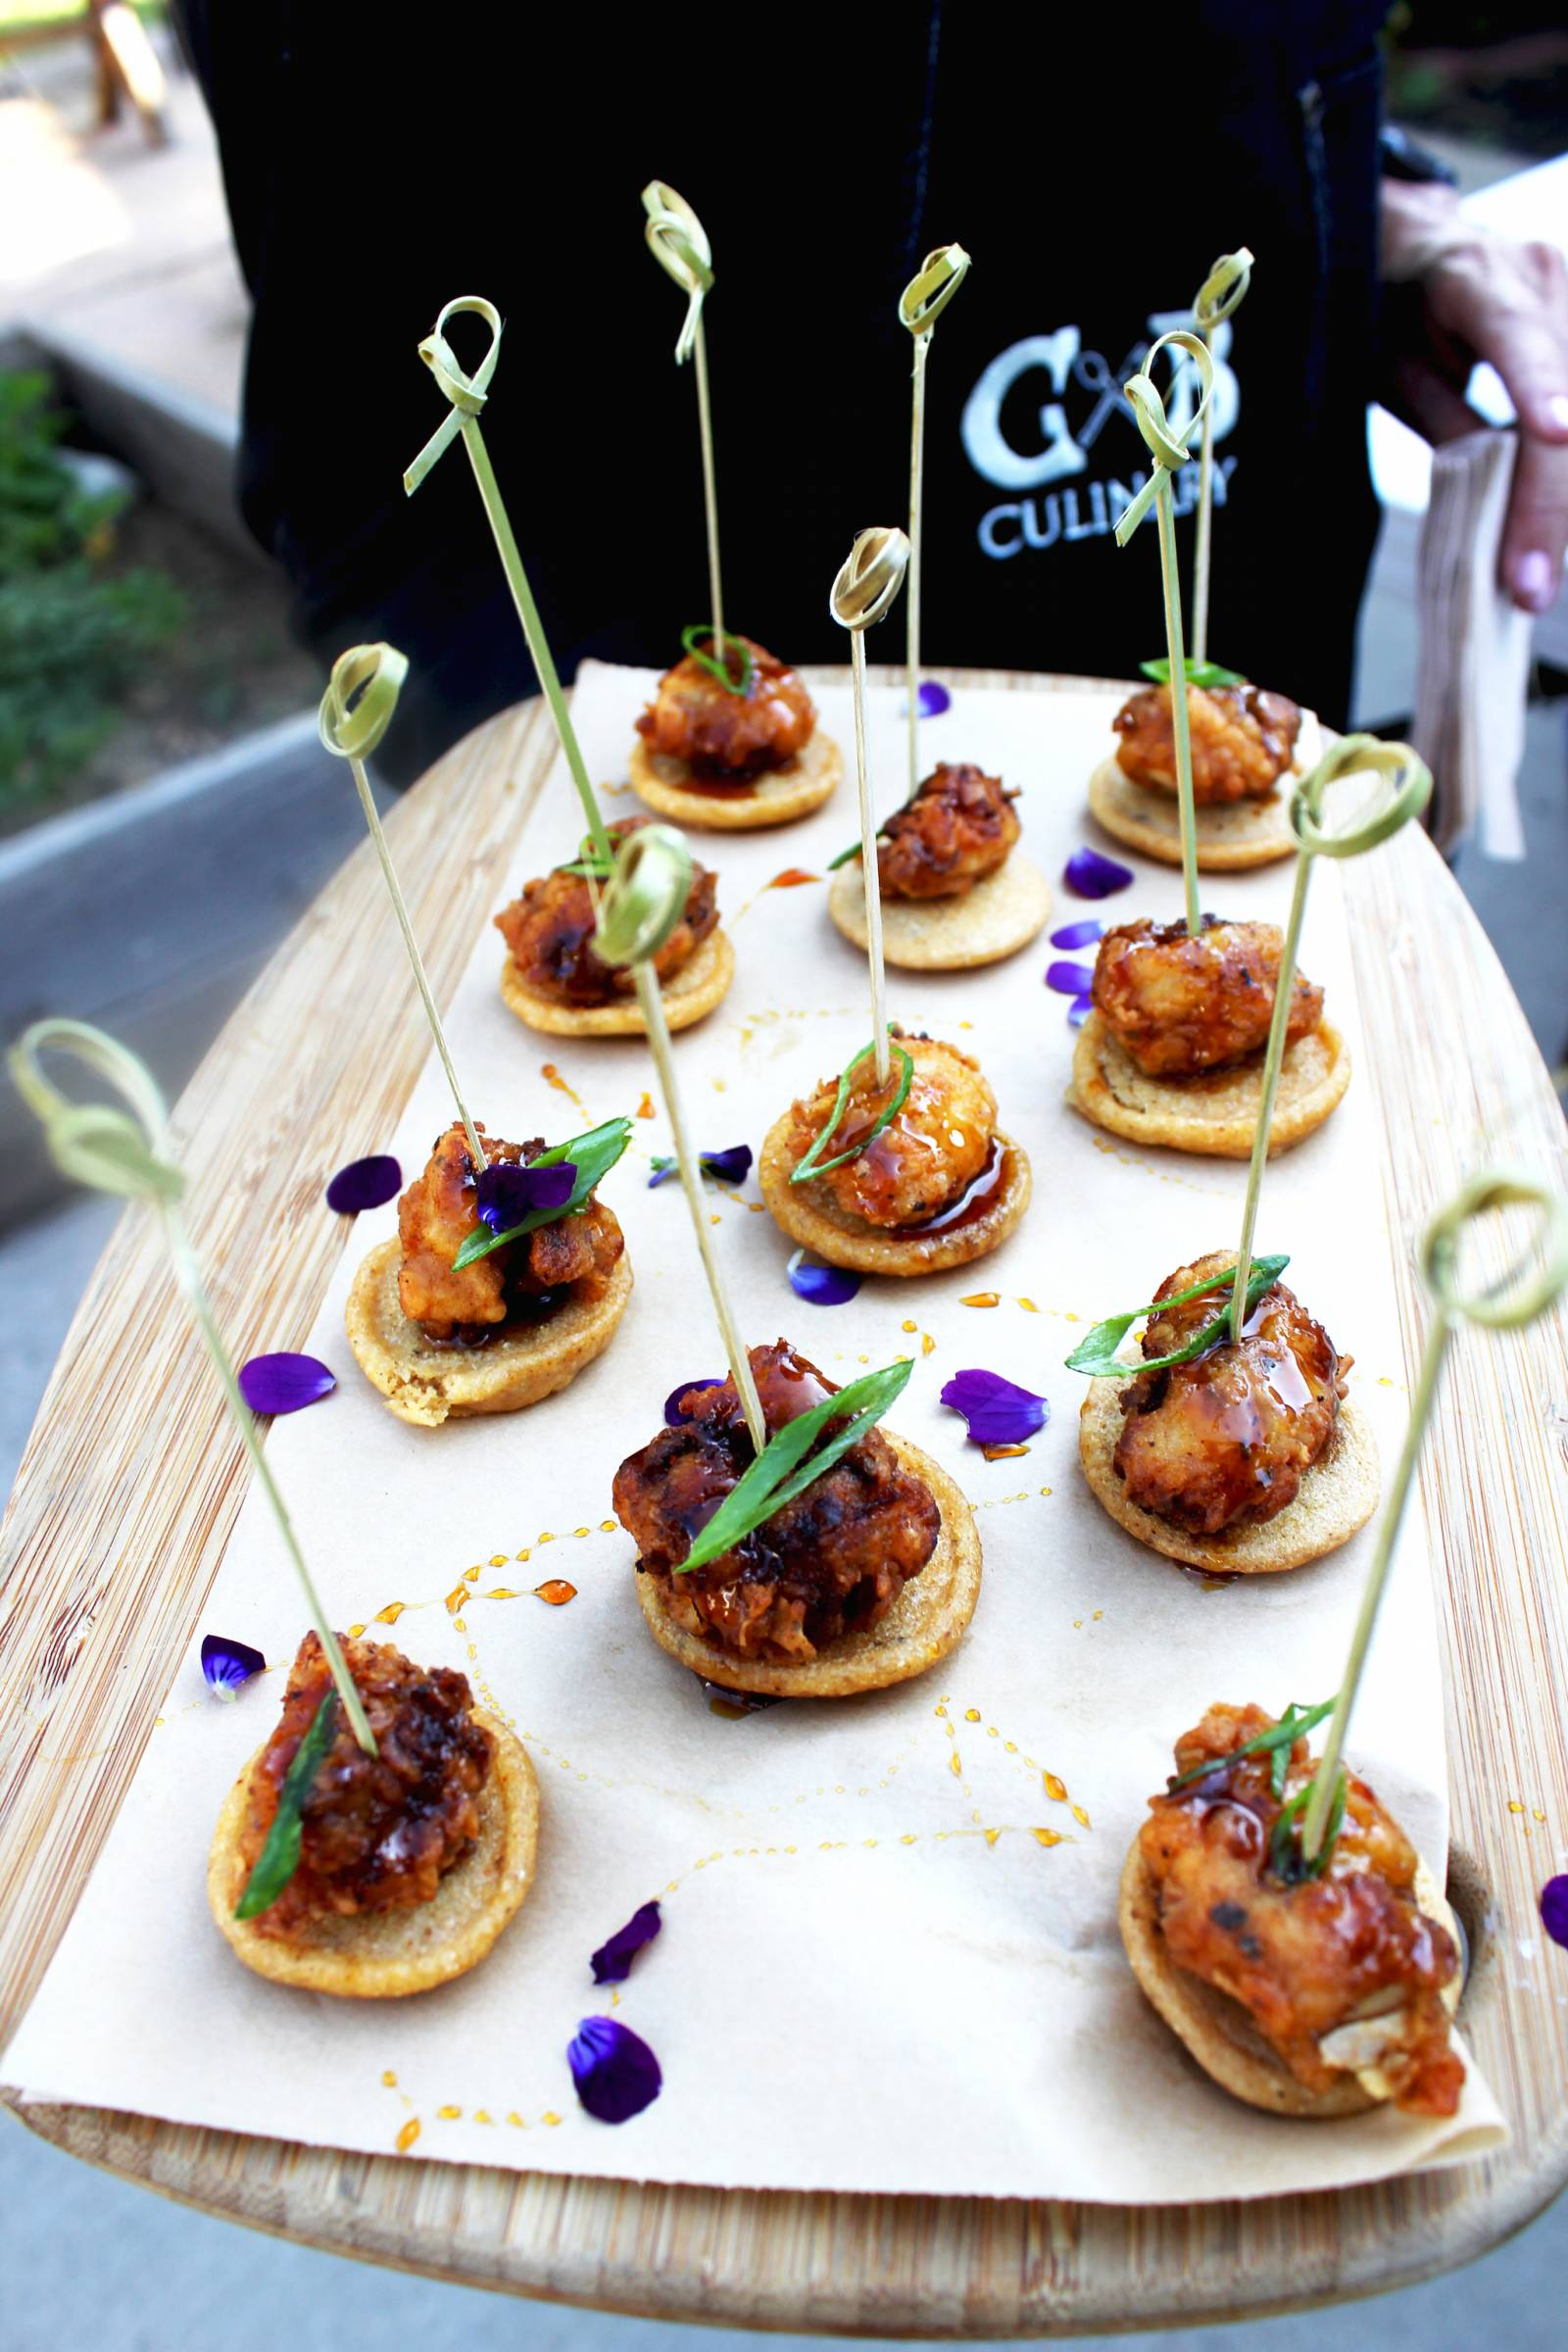 appetizers | wedding reception food inspiration made by GB Culinary